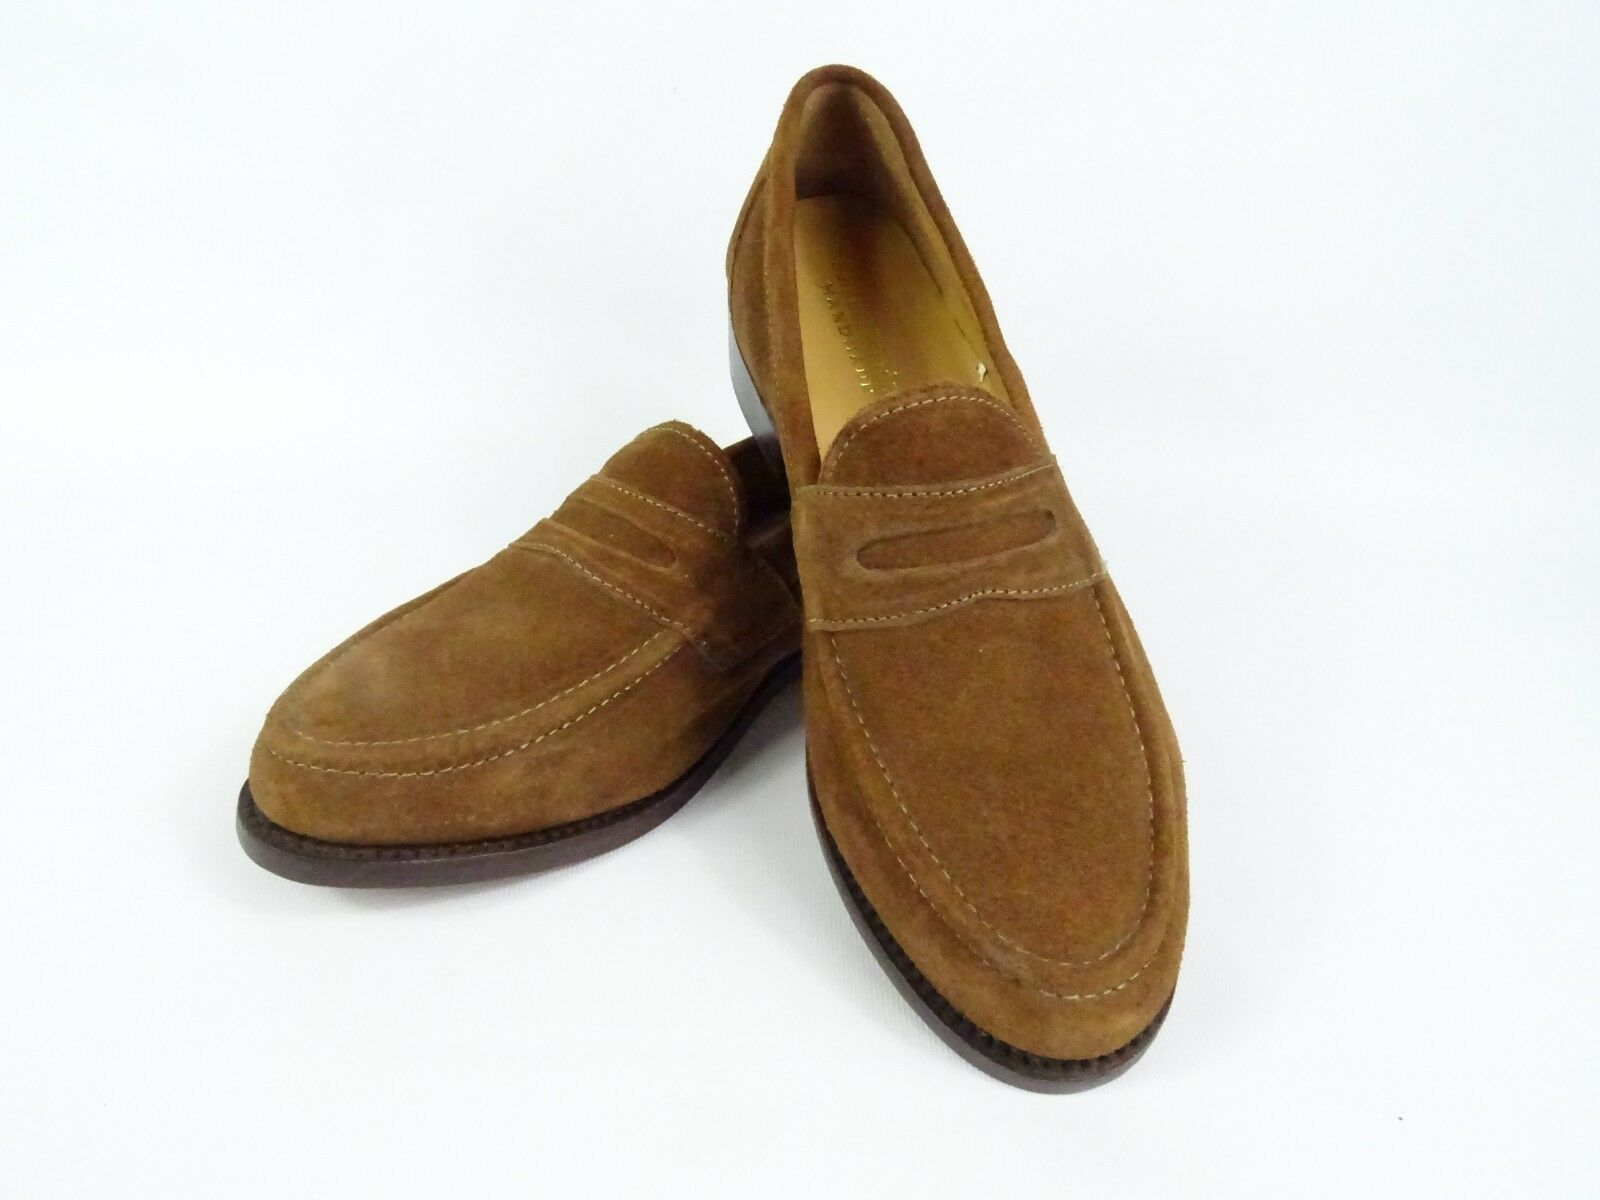 Samuel Windsor Mens Loafers Leather shoes Suede Smart Slip On UK 8.5 new